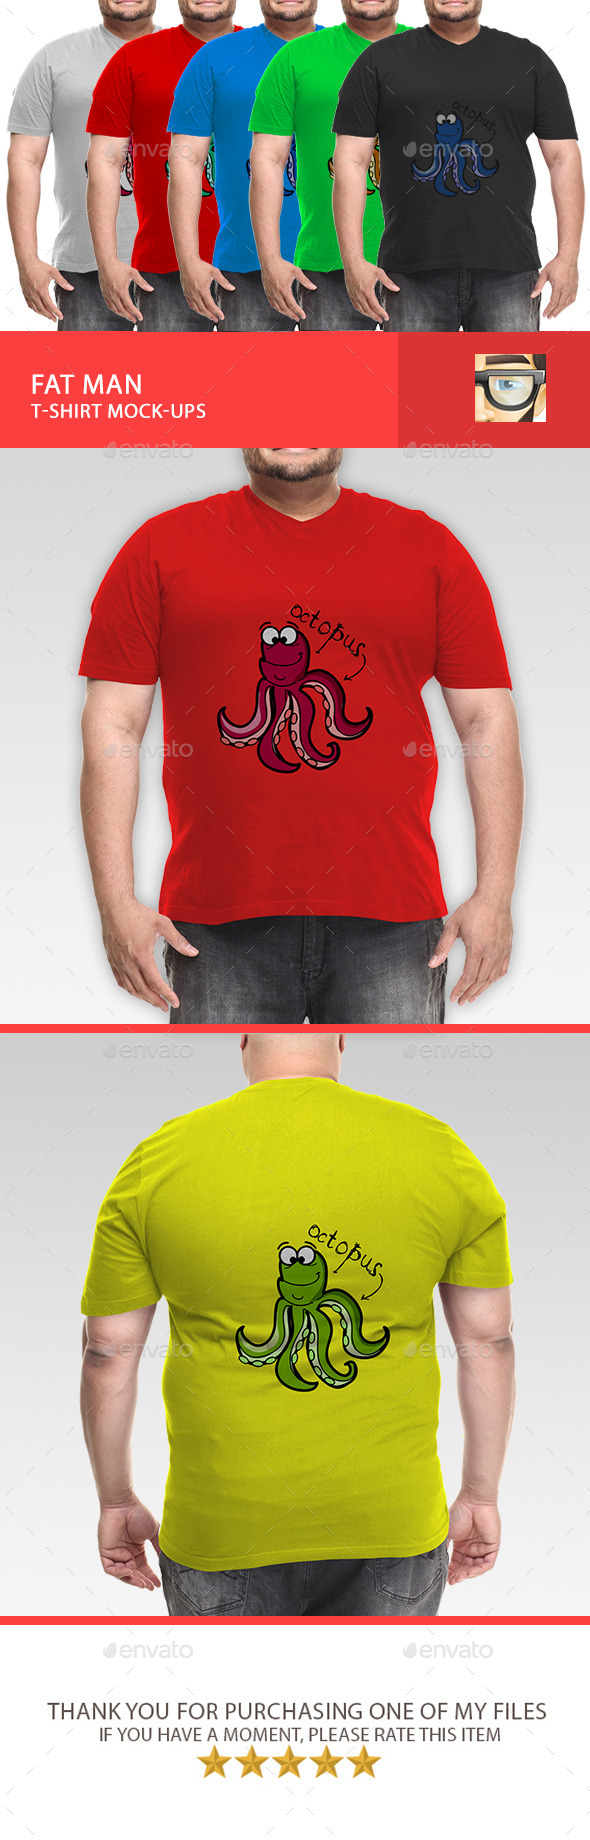 GraphicRiver Fat Man T-Shirt Mock-Ups 11118307